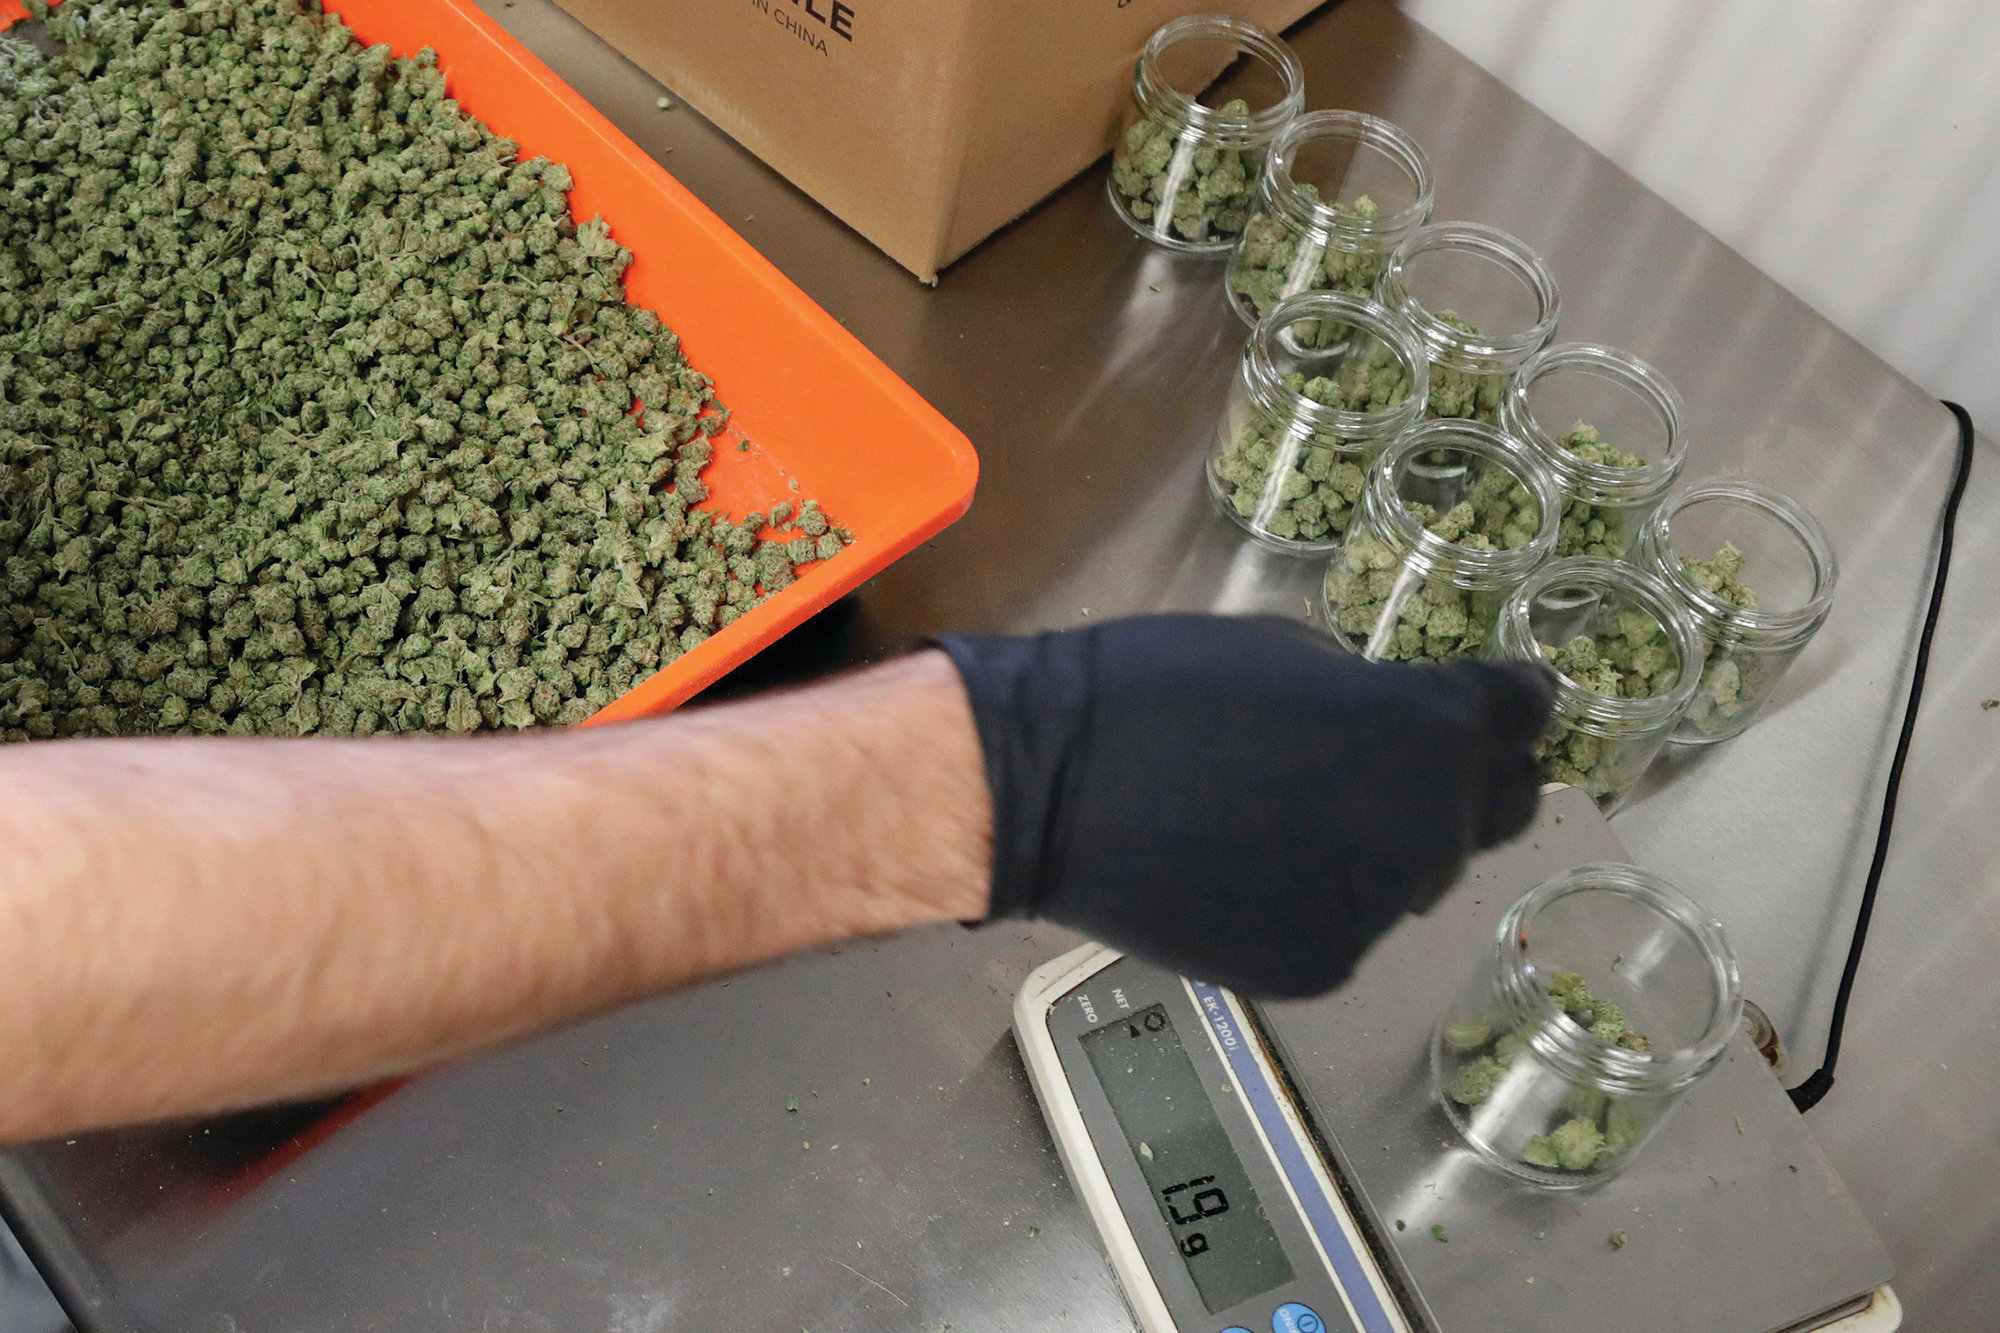 An employee at a medical marijuana dispensary in Egg Harbor Township, New Jersey, sorts buds into prescription bottles in March. At the end of 2018, about 1.4 million Americans are actively using marijuana to treat anxiety, sleep apnea, cancer and other conditions, according to an Associated Press analysis of states that track medical marijuana patients.